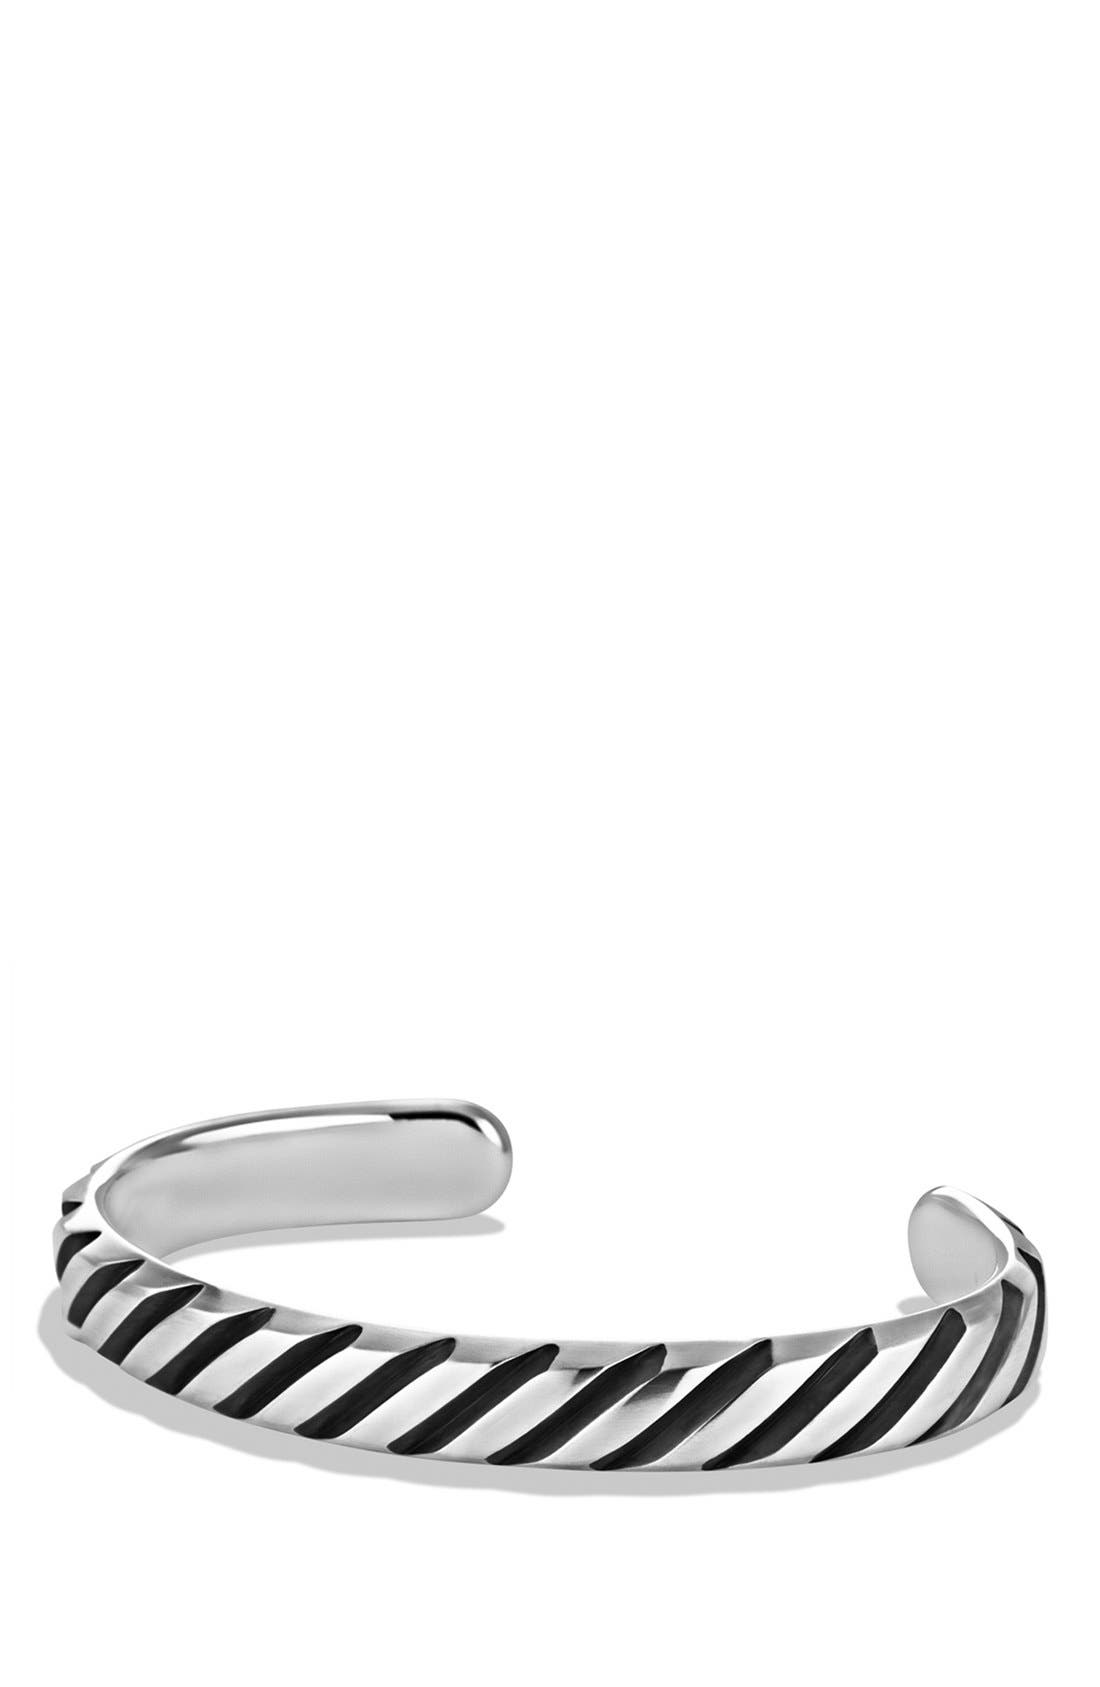 DAVID YURMAN Cable Modern Cable Cuff